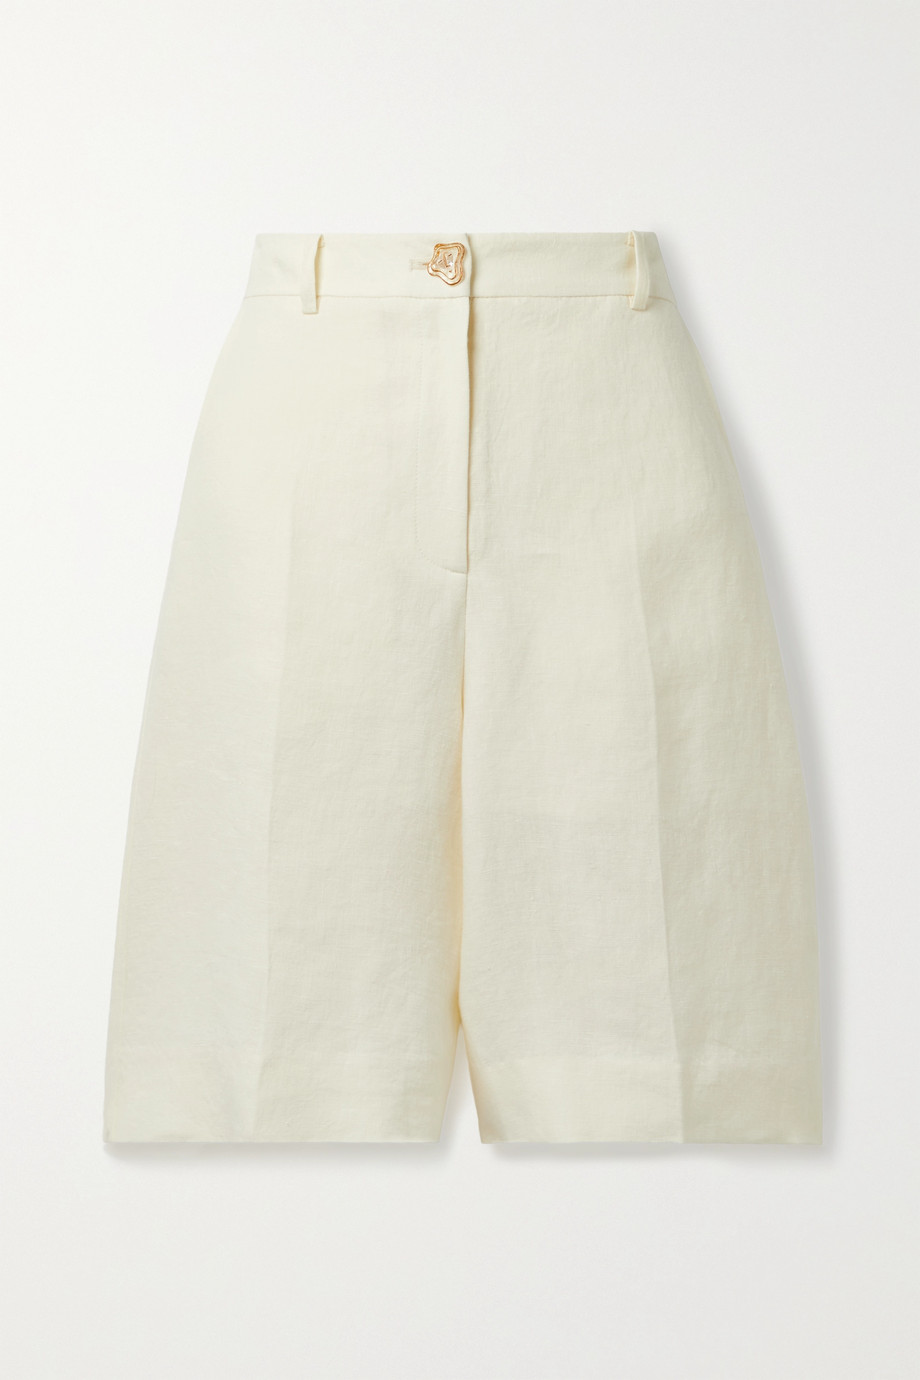 REJINA PYO Riley linen shorts